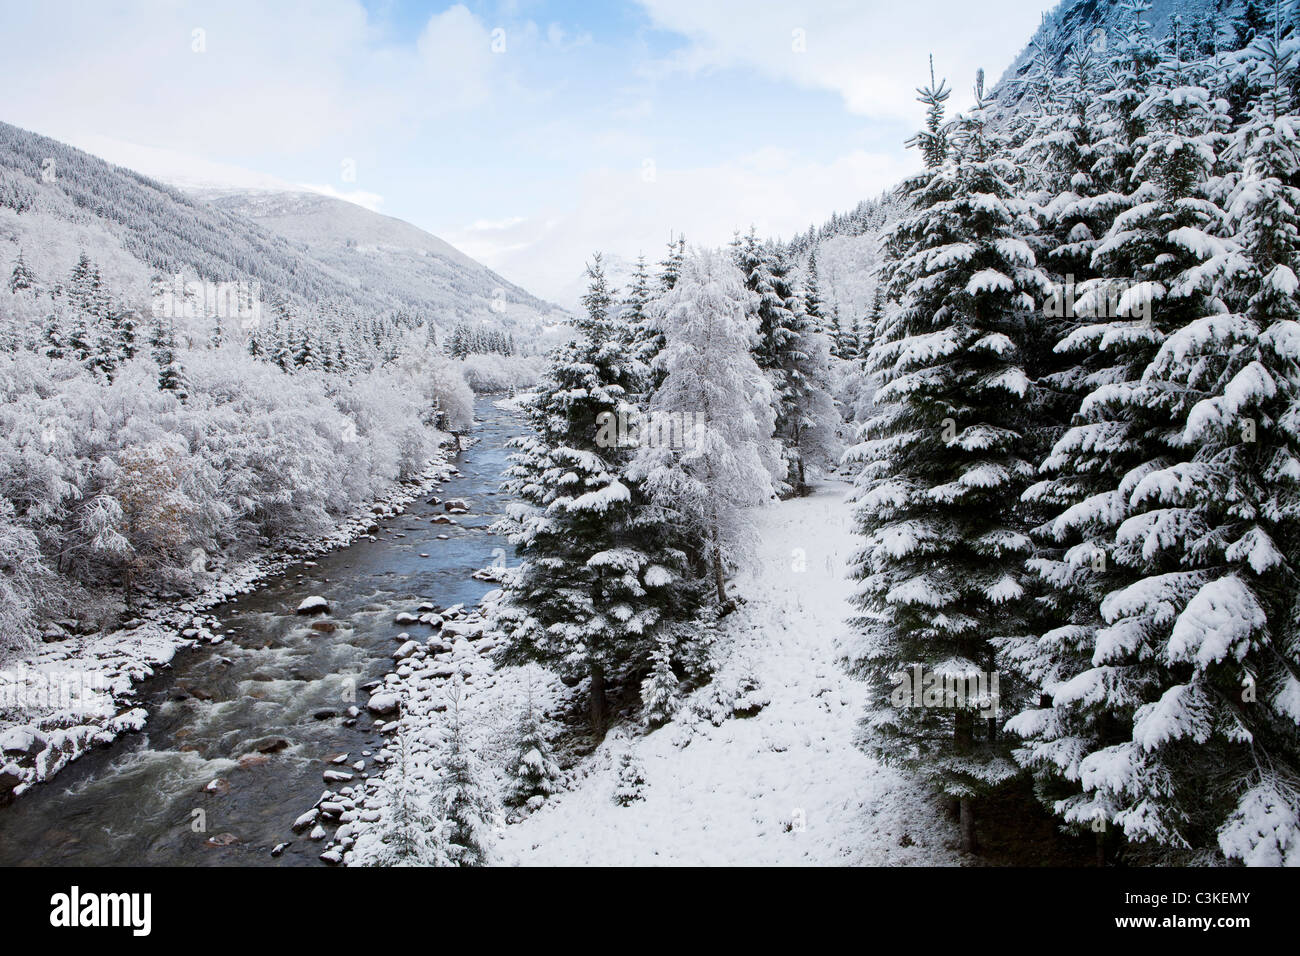 View of stream and snow covered trees, Stordal, Norway. - Stock Image